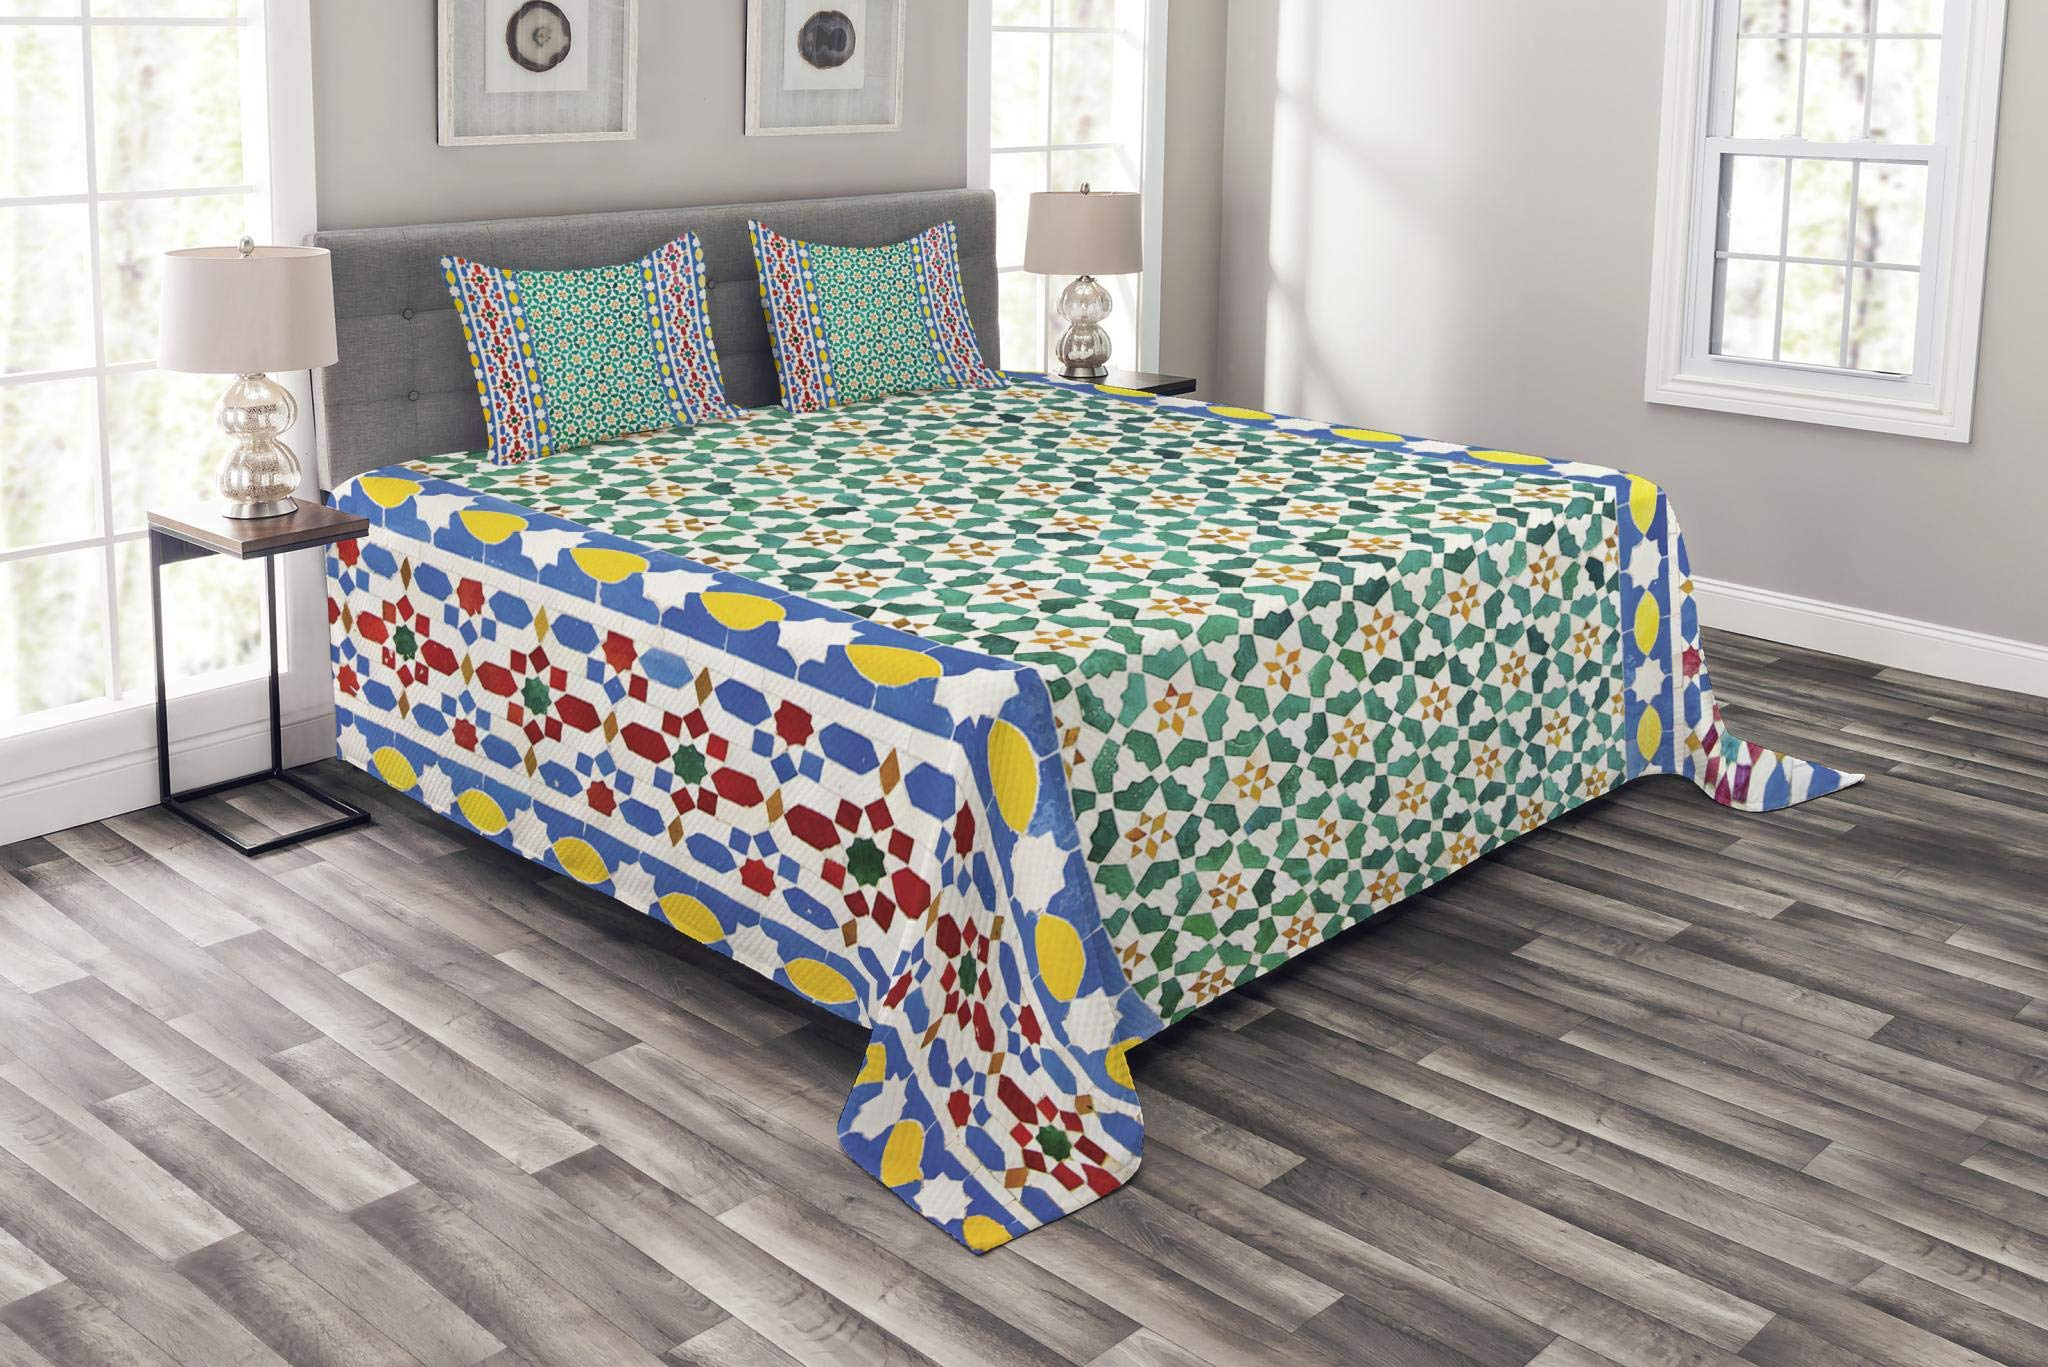 Ambesonne Moroccan Bedspread Set King Size, Colorful Moroccan Mosaic Wall Middle East Style Craftsmanship Vertical Details, Decorative Quilted 3 Piece Coverlet Set with 2 Pillow Shams, Multicolor